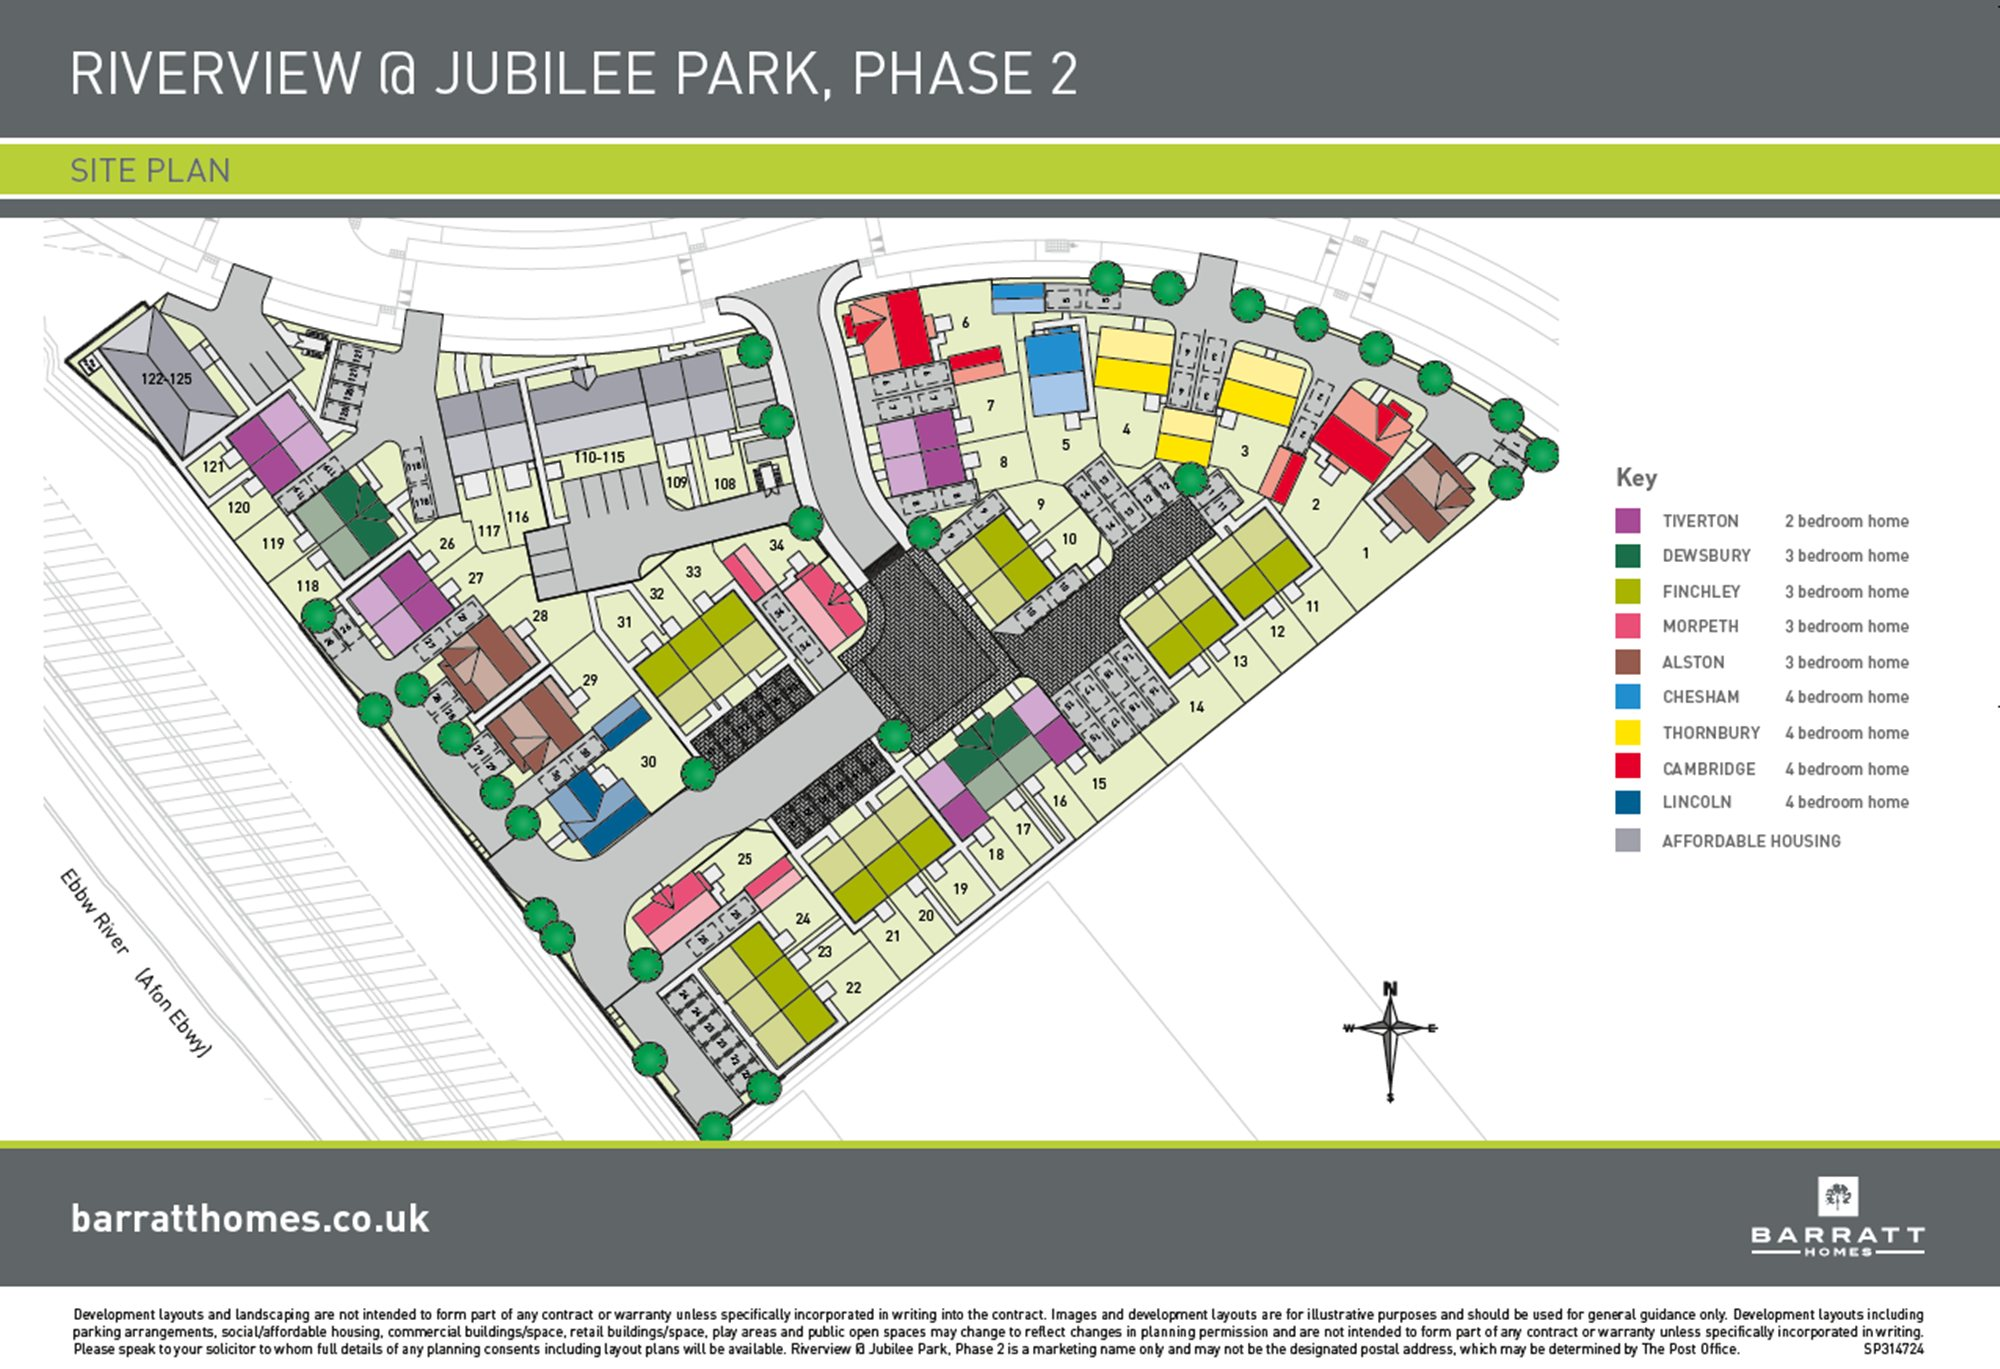 Riverview @ Jubilee Park Phase 2 Site Plan